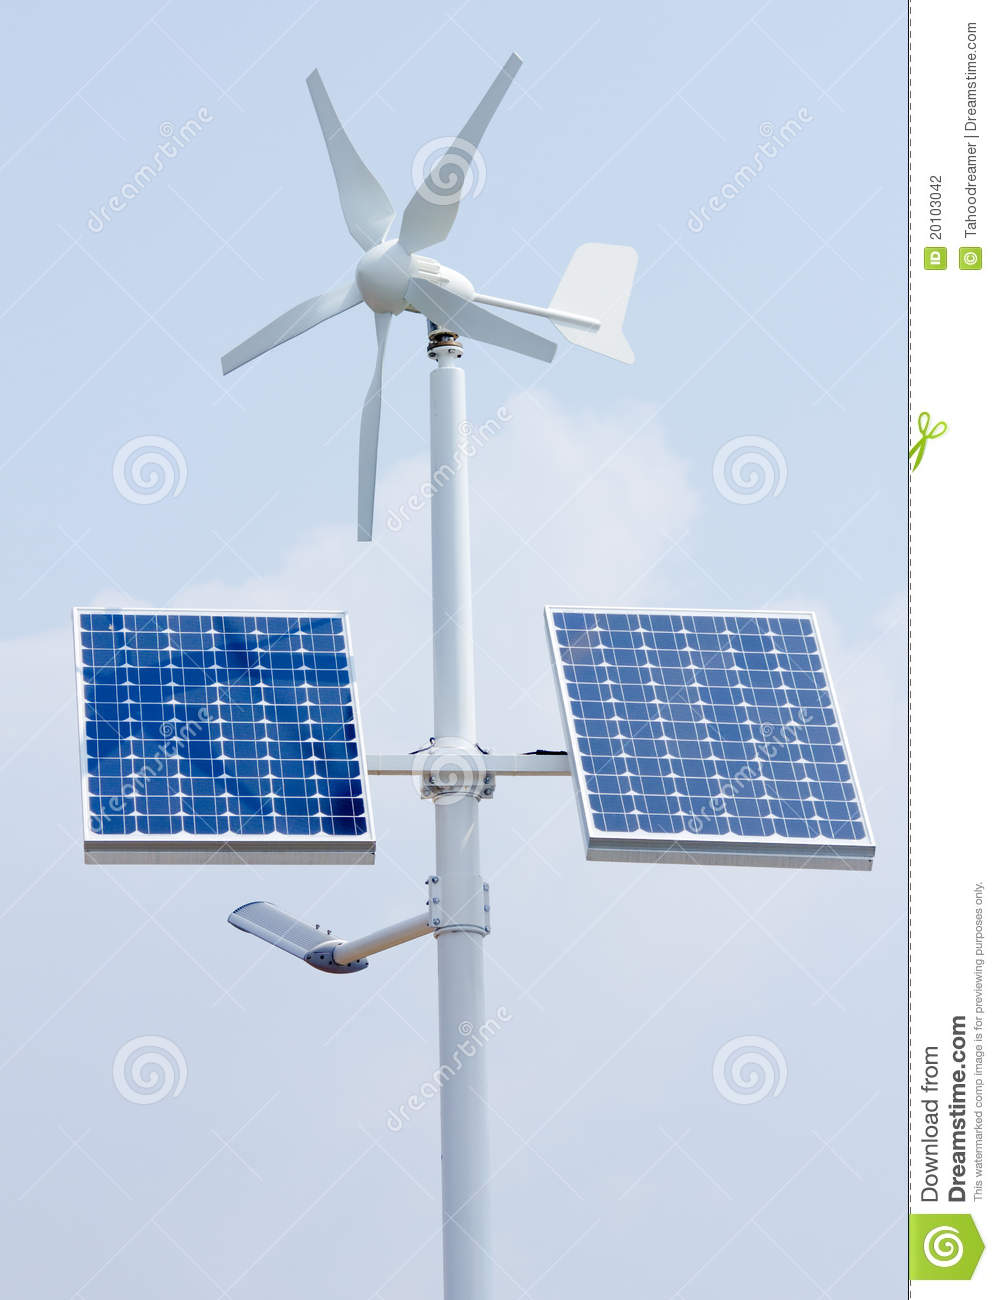 Mini Wind Power And Solar Panels Stock Photo - Image of